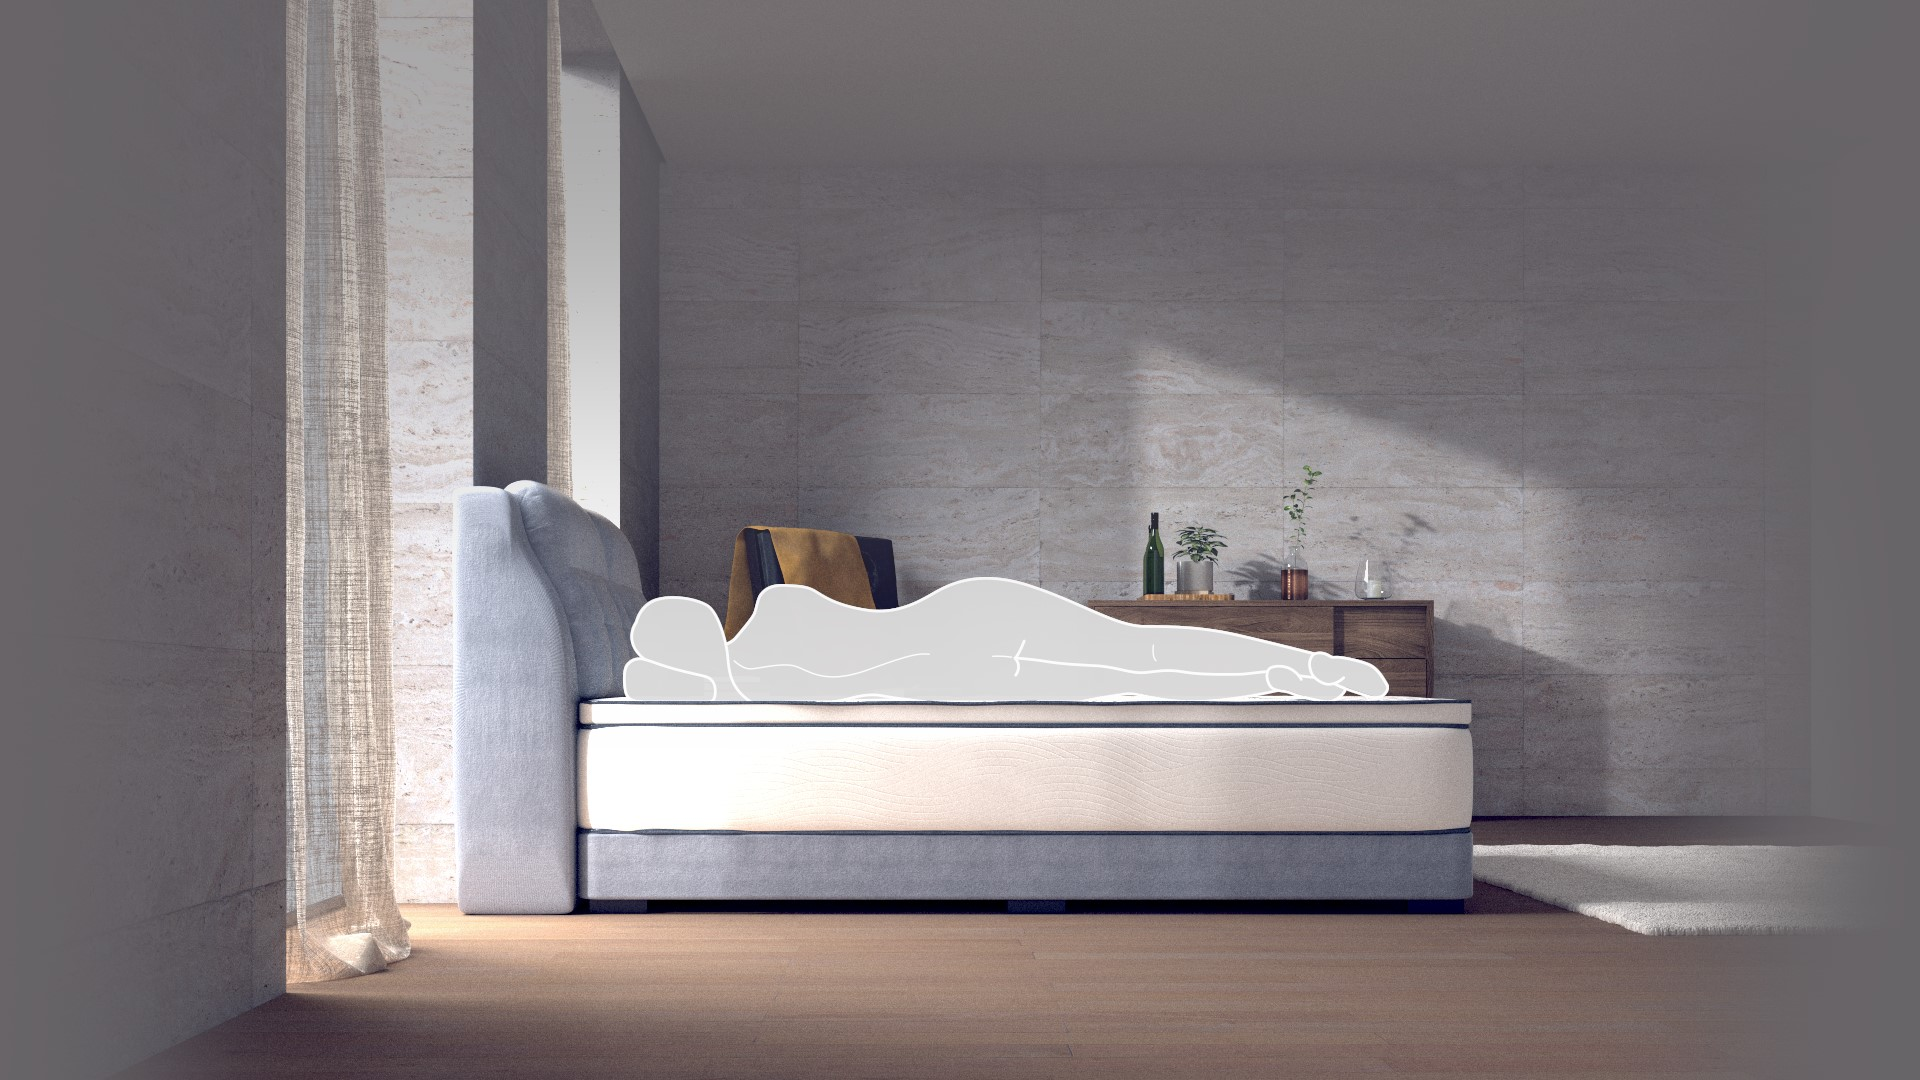 NEW Coway Prime: Premium Foam & Latex Mattress with Back Support and Contouring